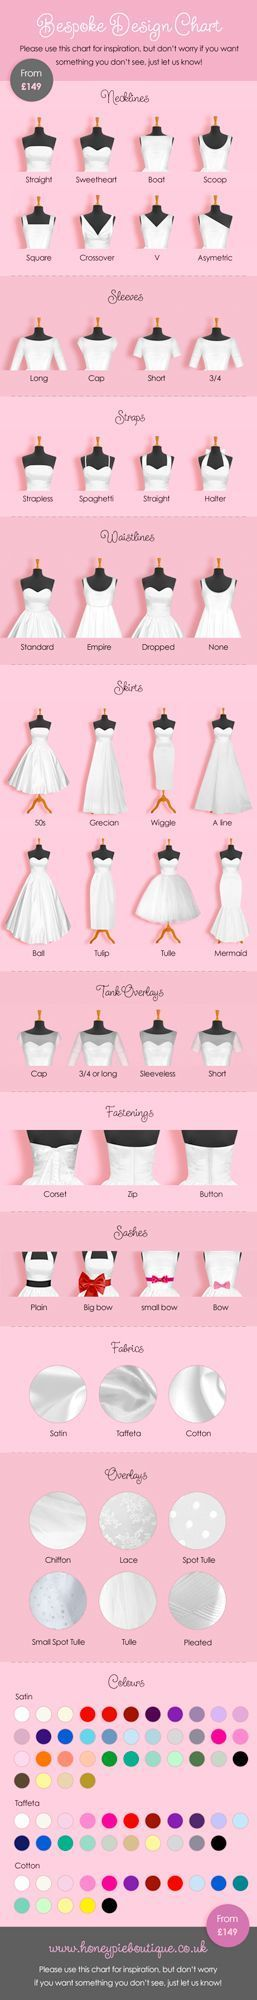 Bespoke wedding dress design chart, custom wedding dress, affordable, quirky alternative wedding dress